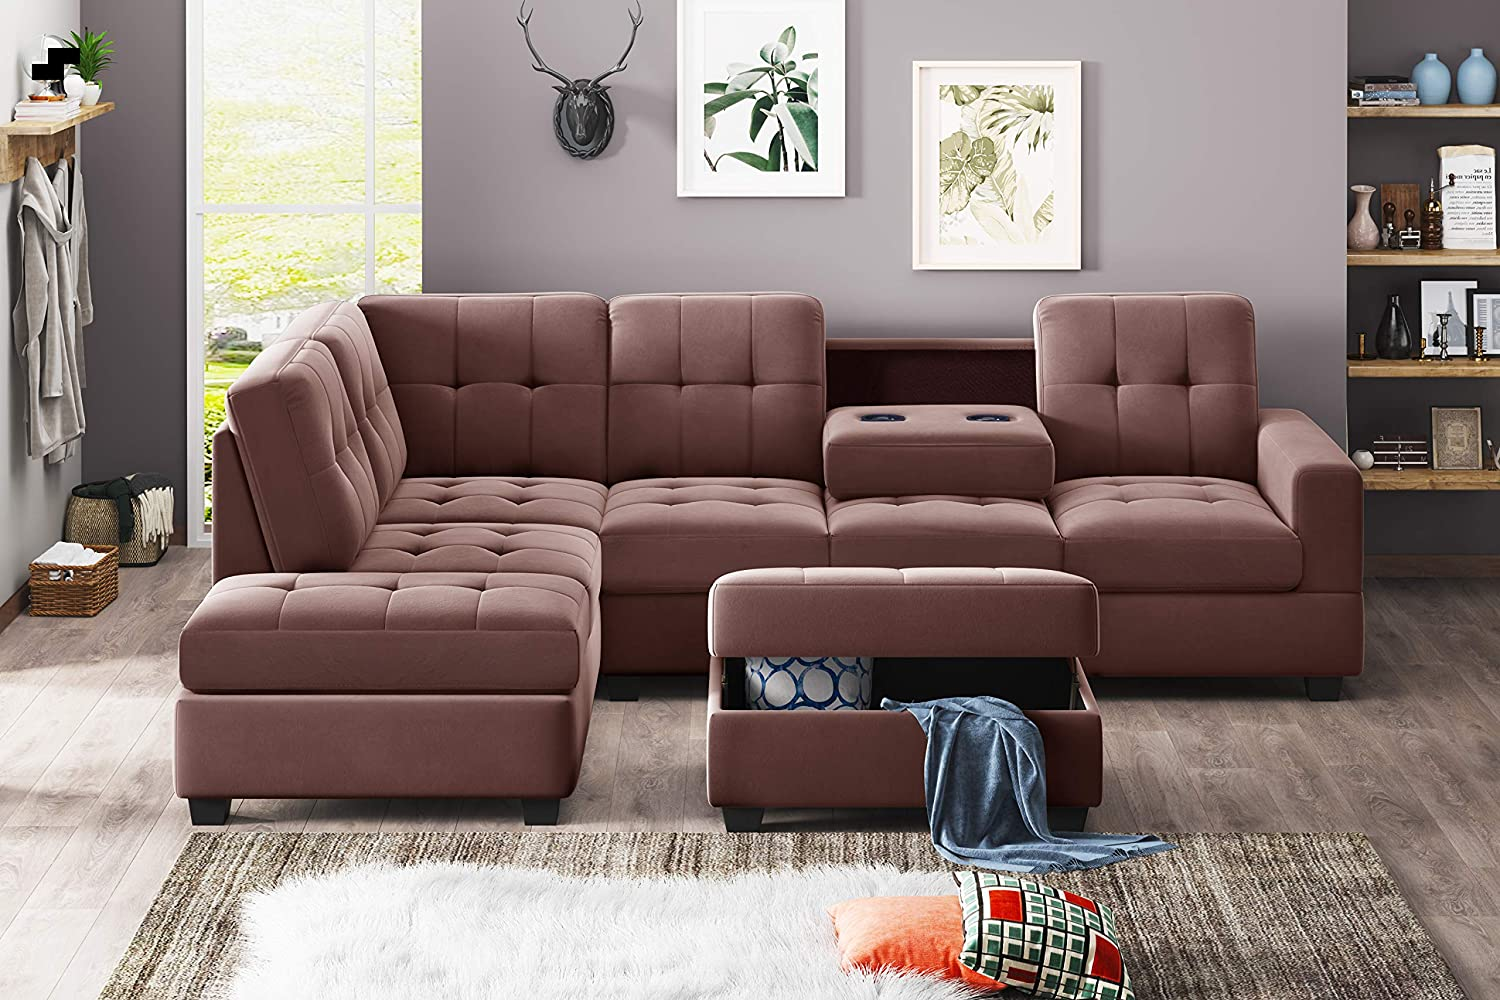 3PCS Sectional Sofa Microfiber L-Shape Manufacturer regenerated product and Couch supreme